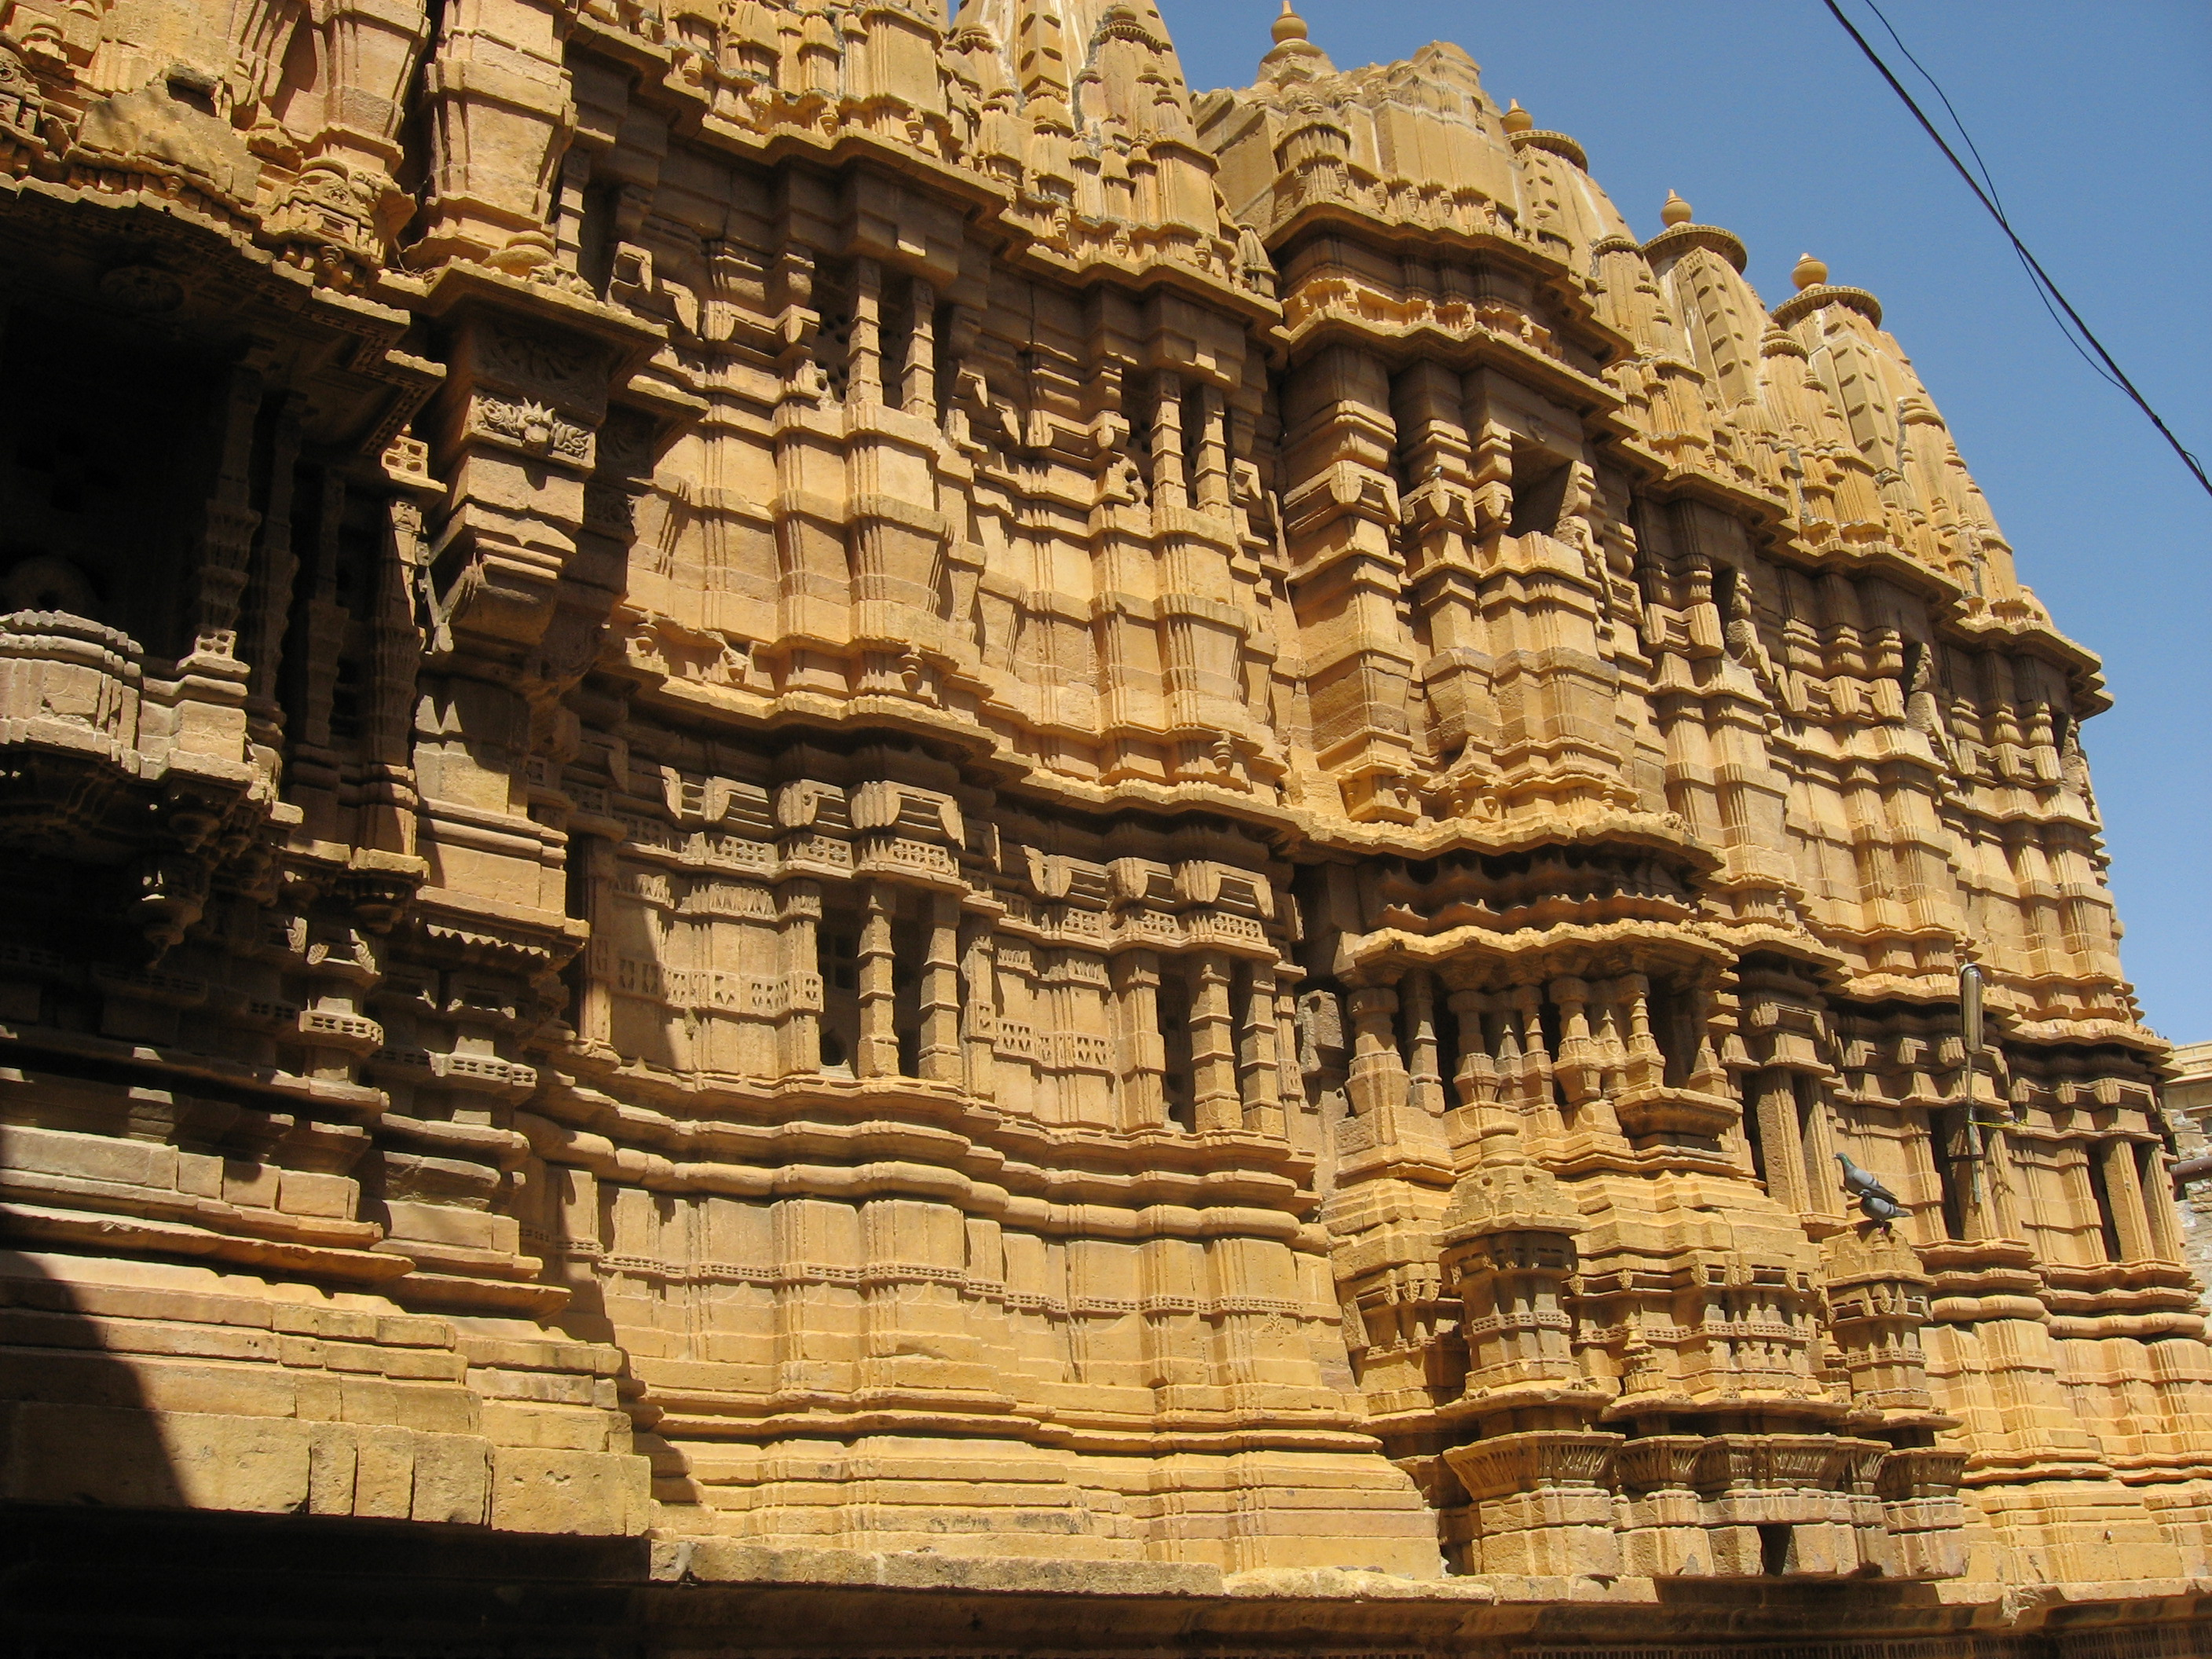 Jain temple in Jaisalmer